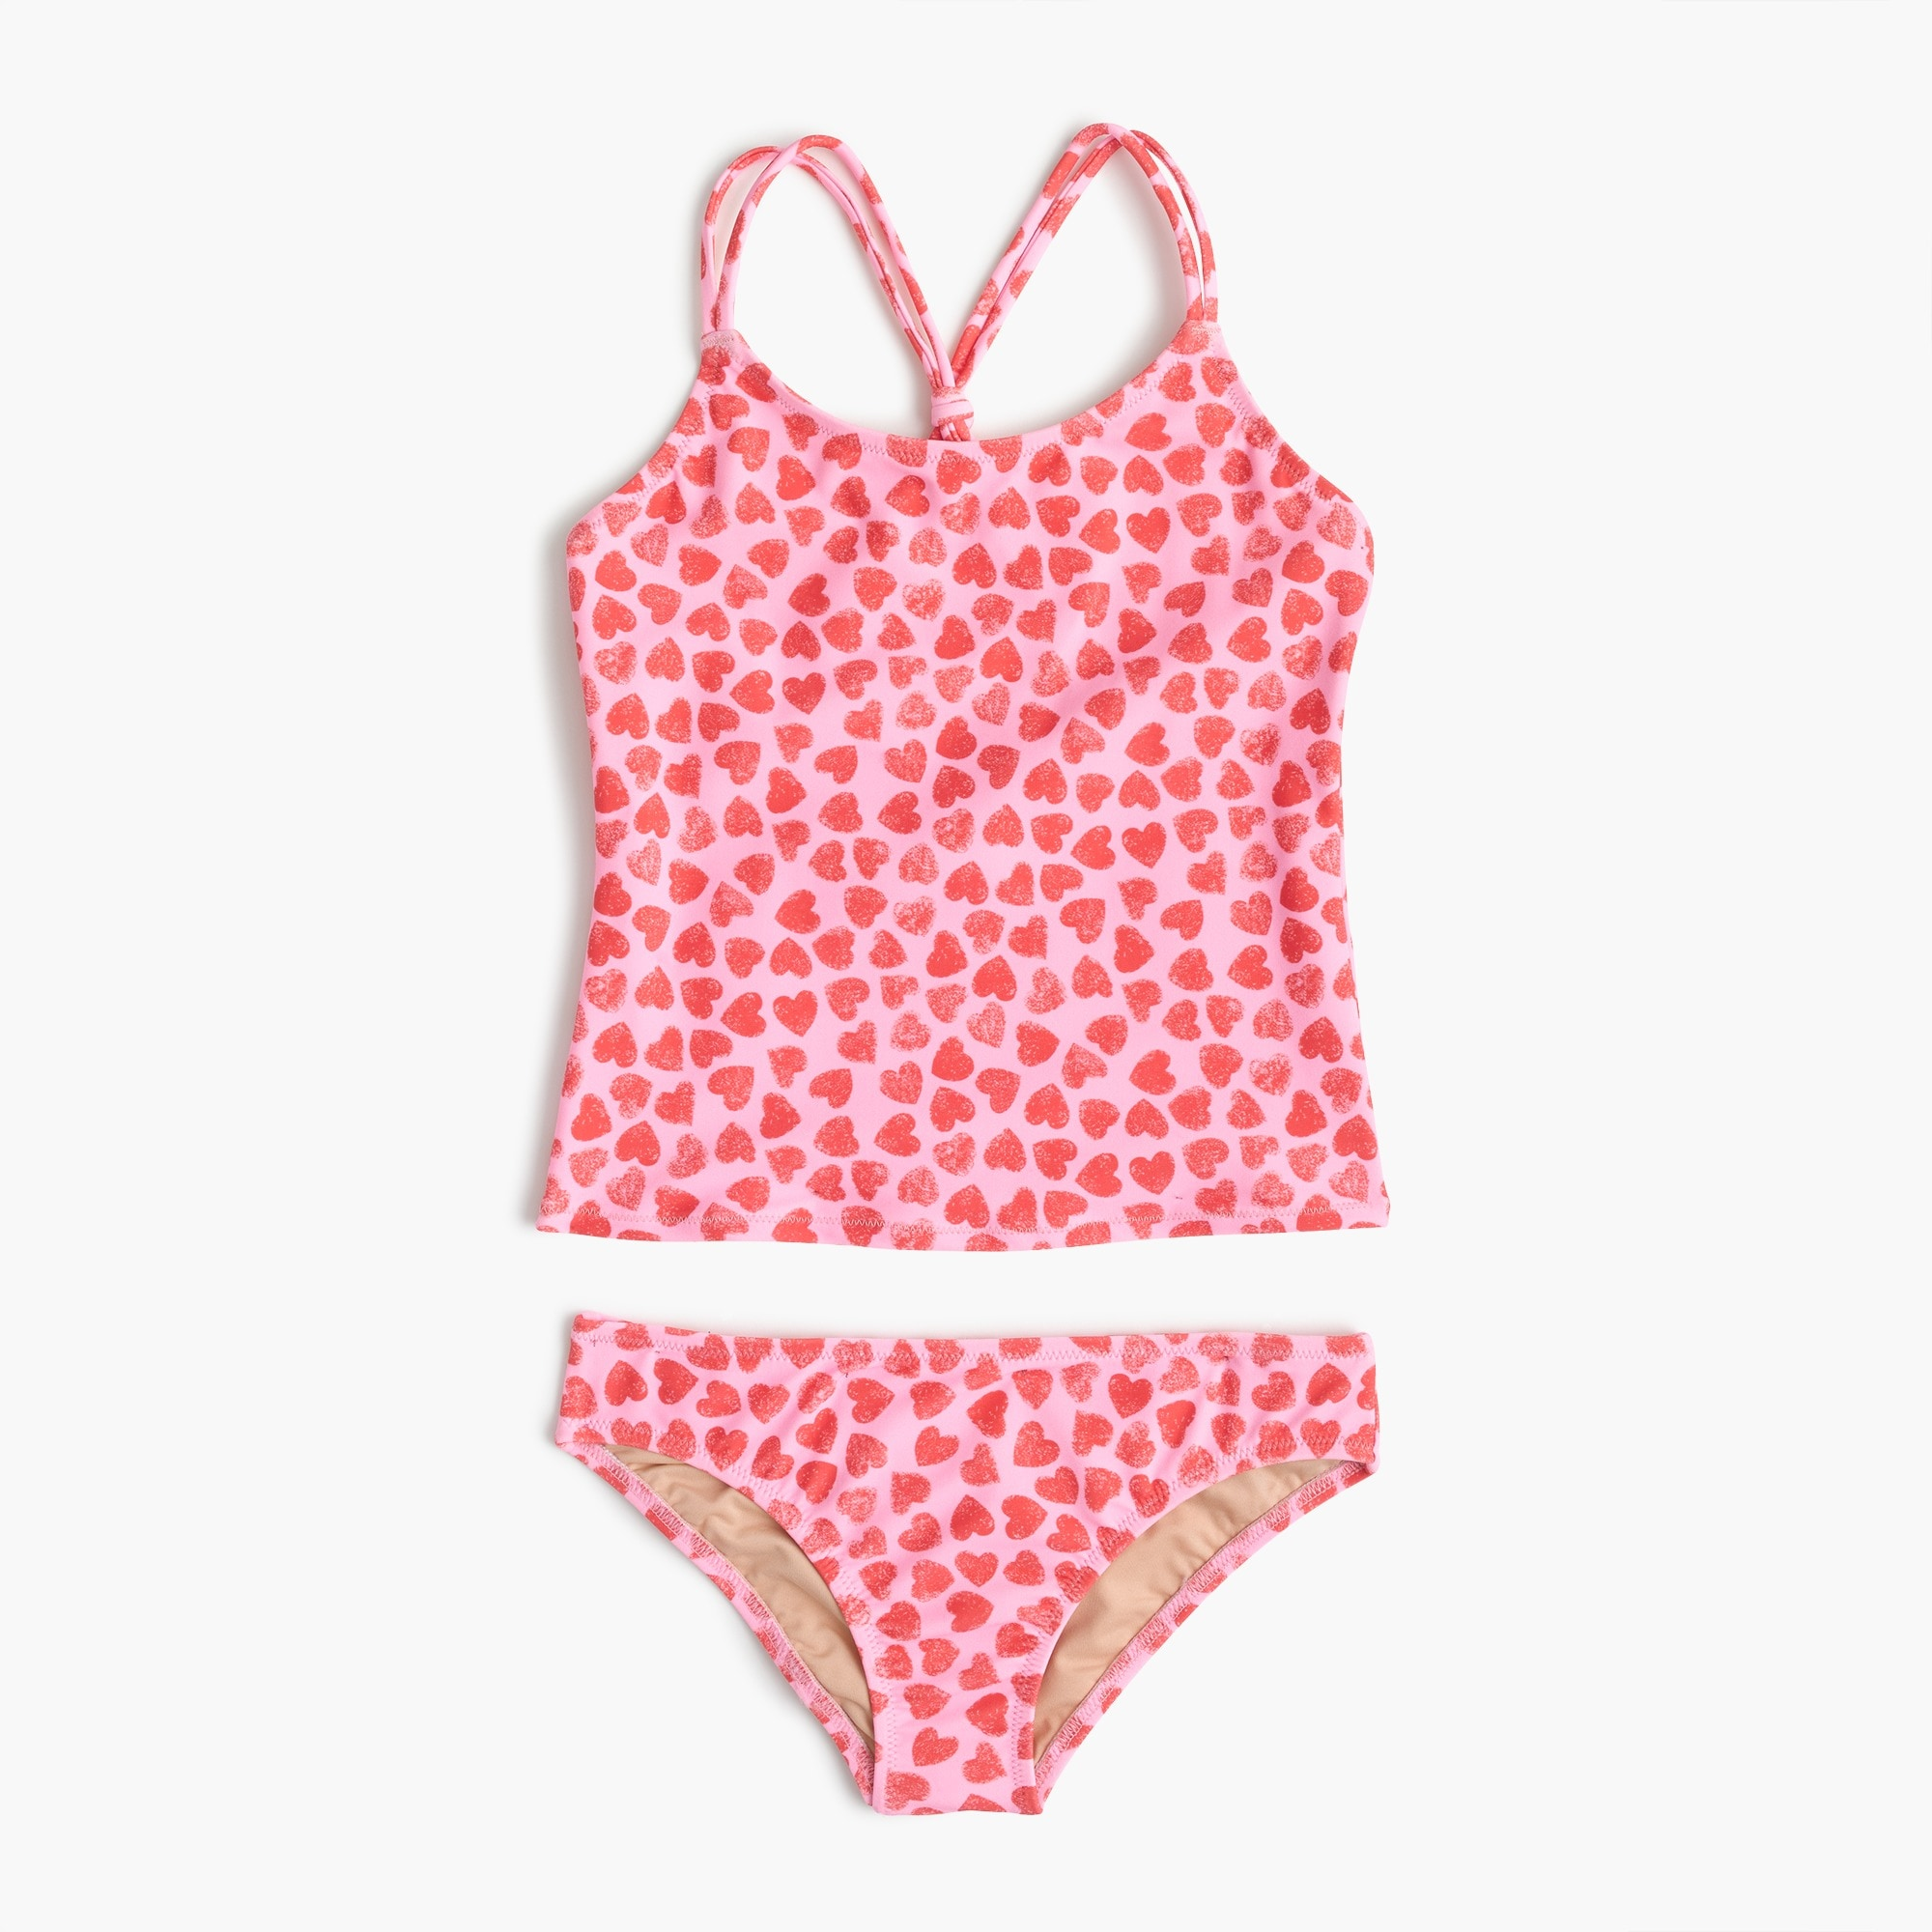 Girls' tankini set in hearts